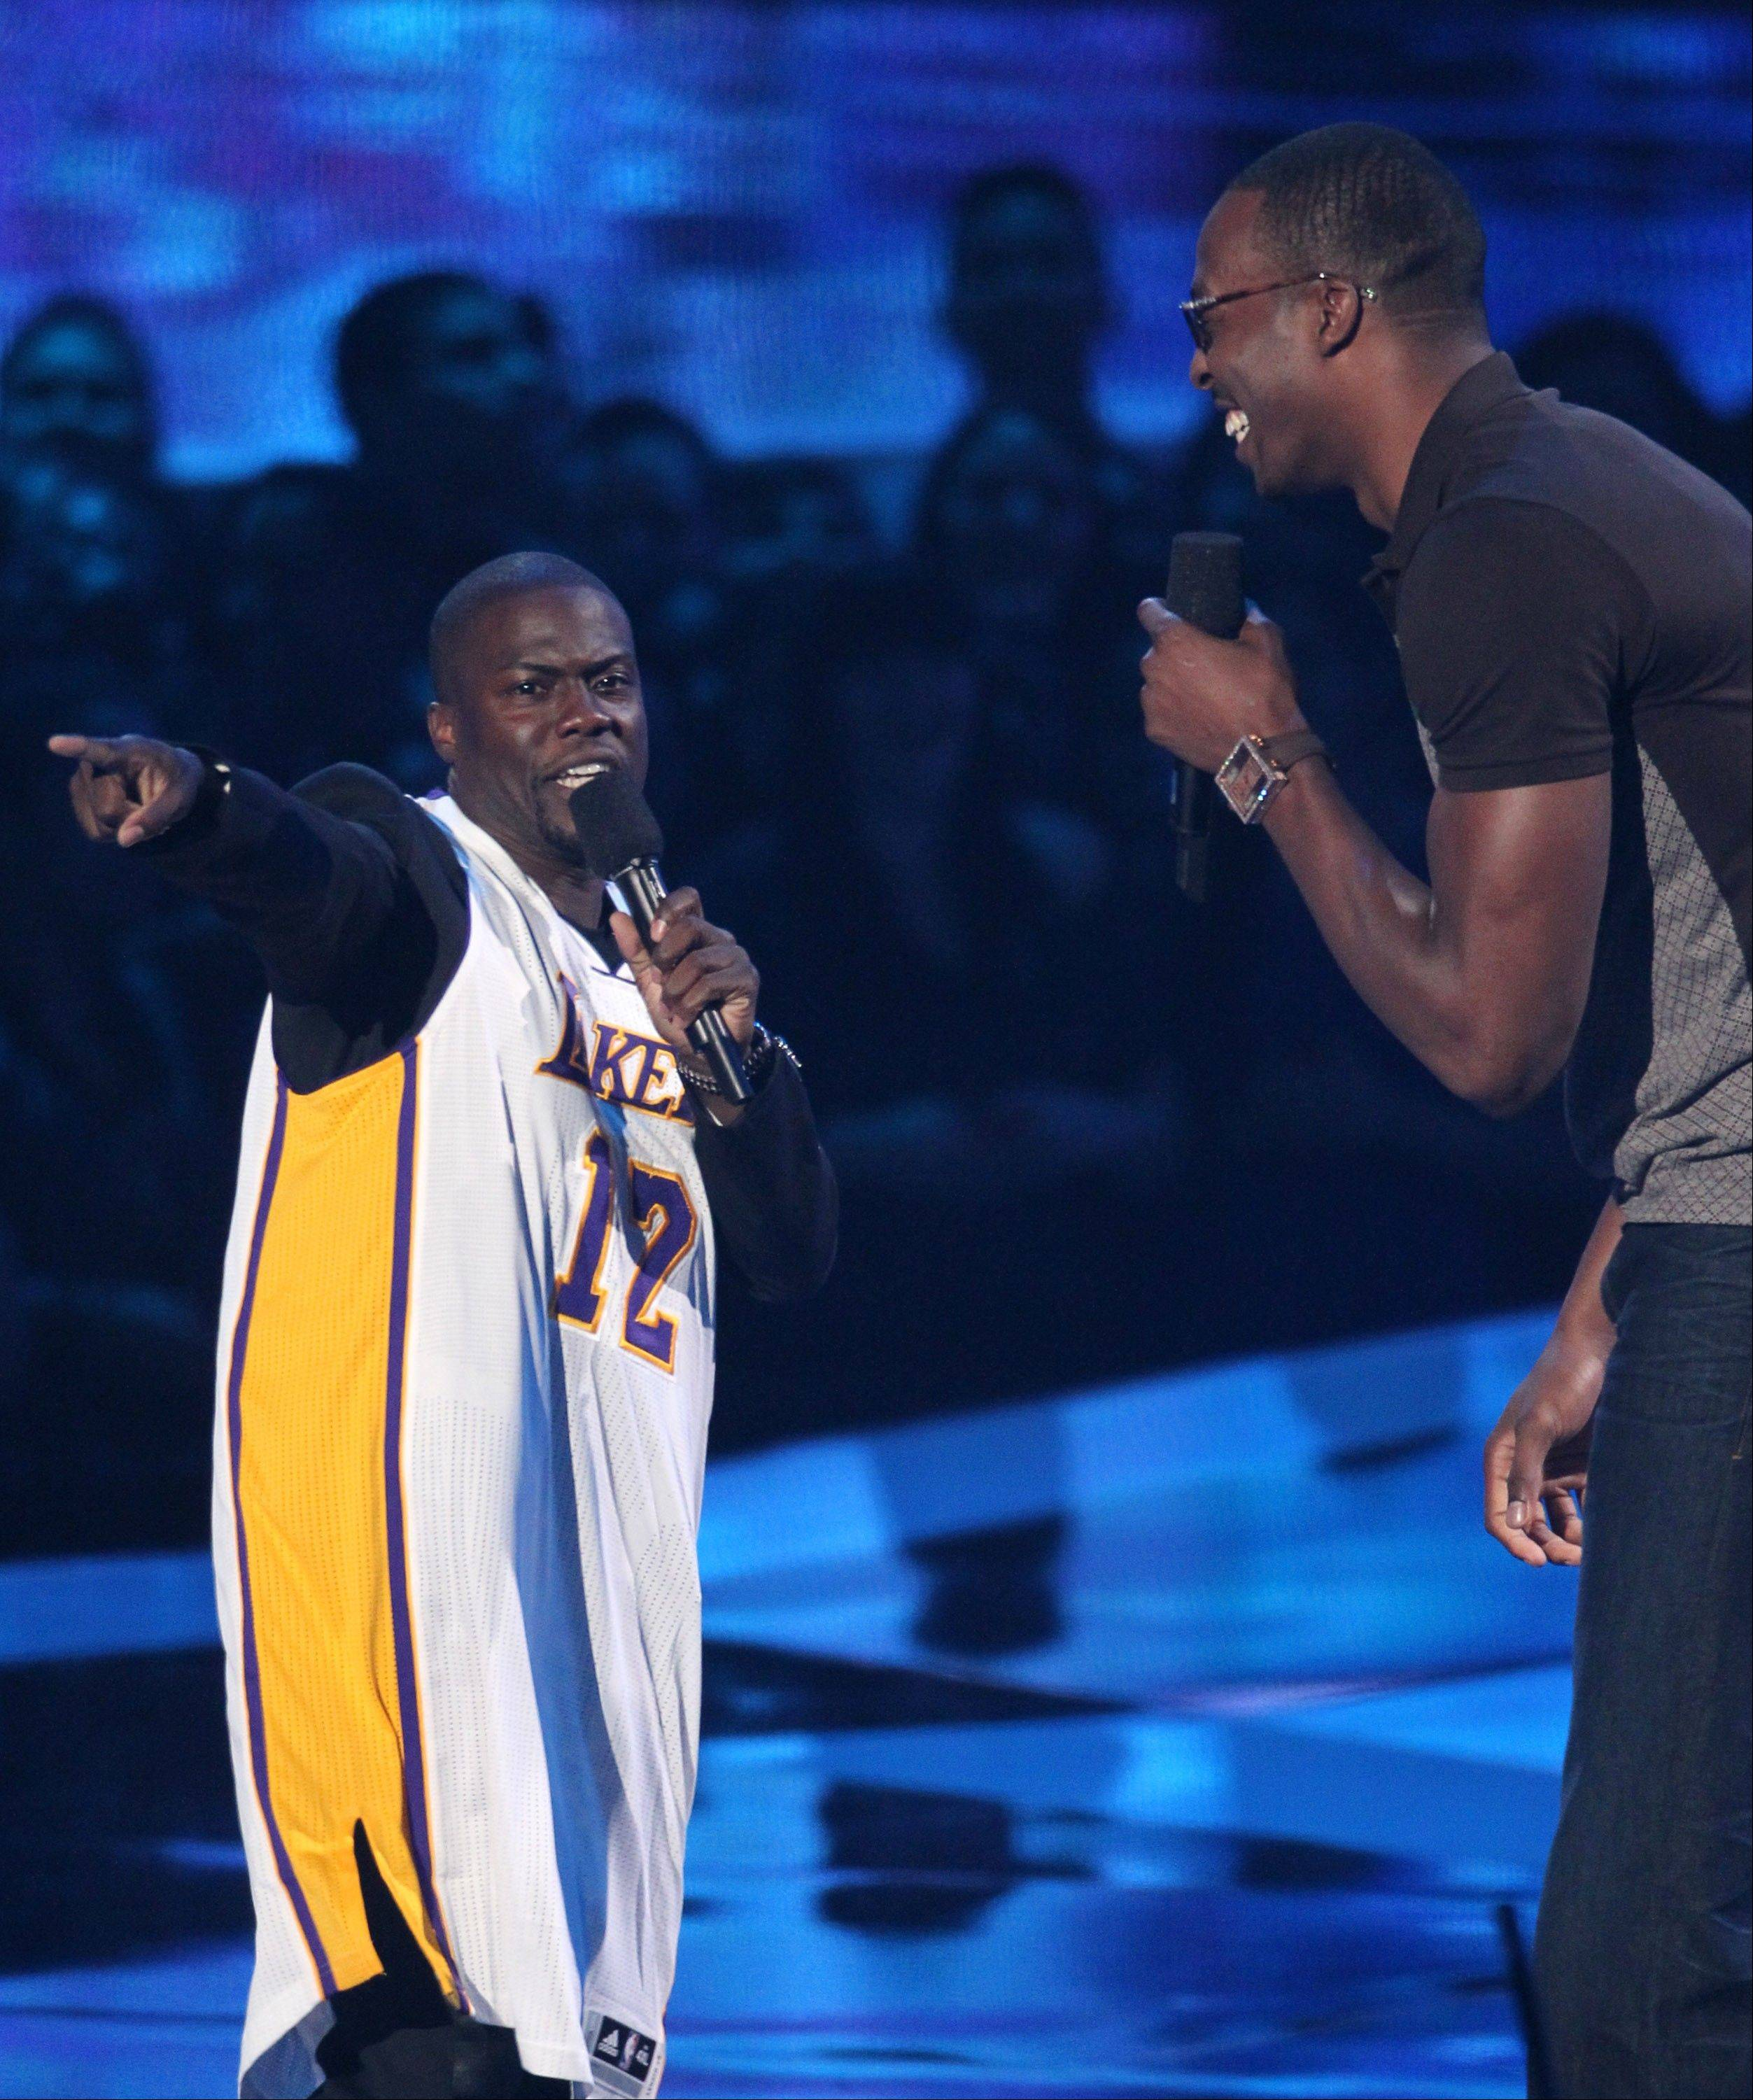 Host Kevin Hart, left, and Dwight Howard speak onstage at the MTV Video Music Awards on Thursday, Sept. 6, 2012, in Los Angeles.